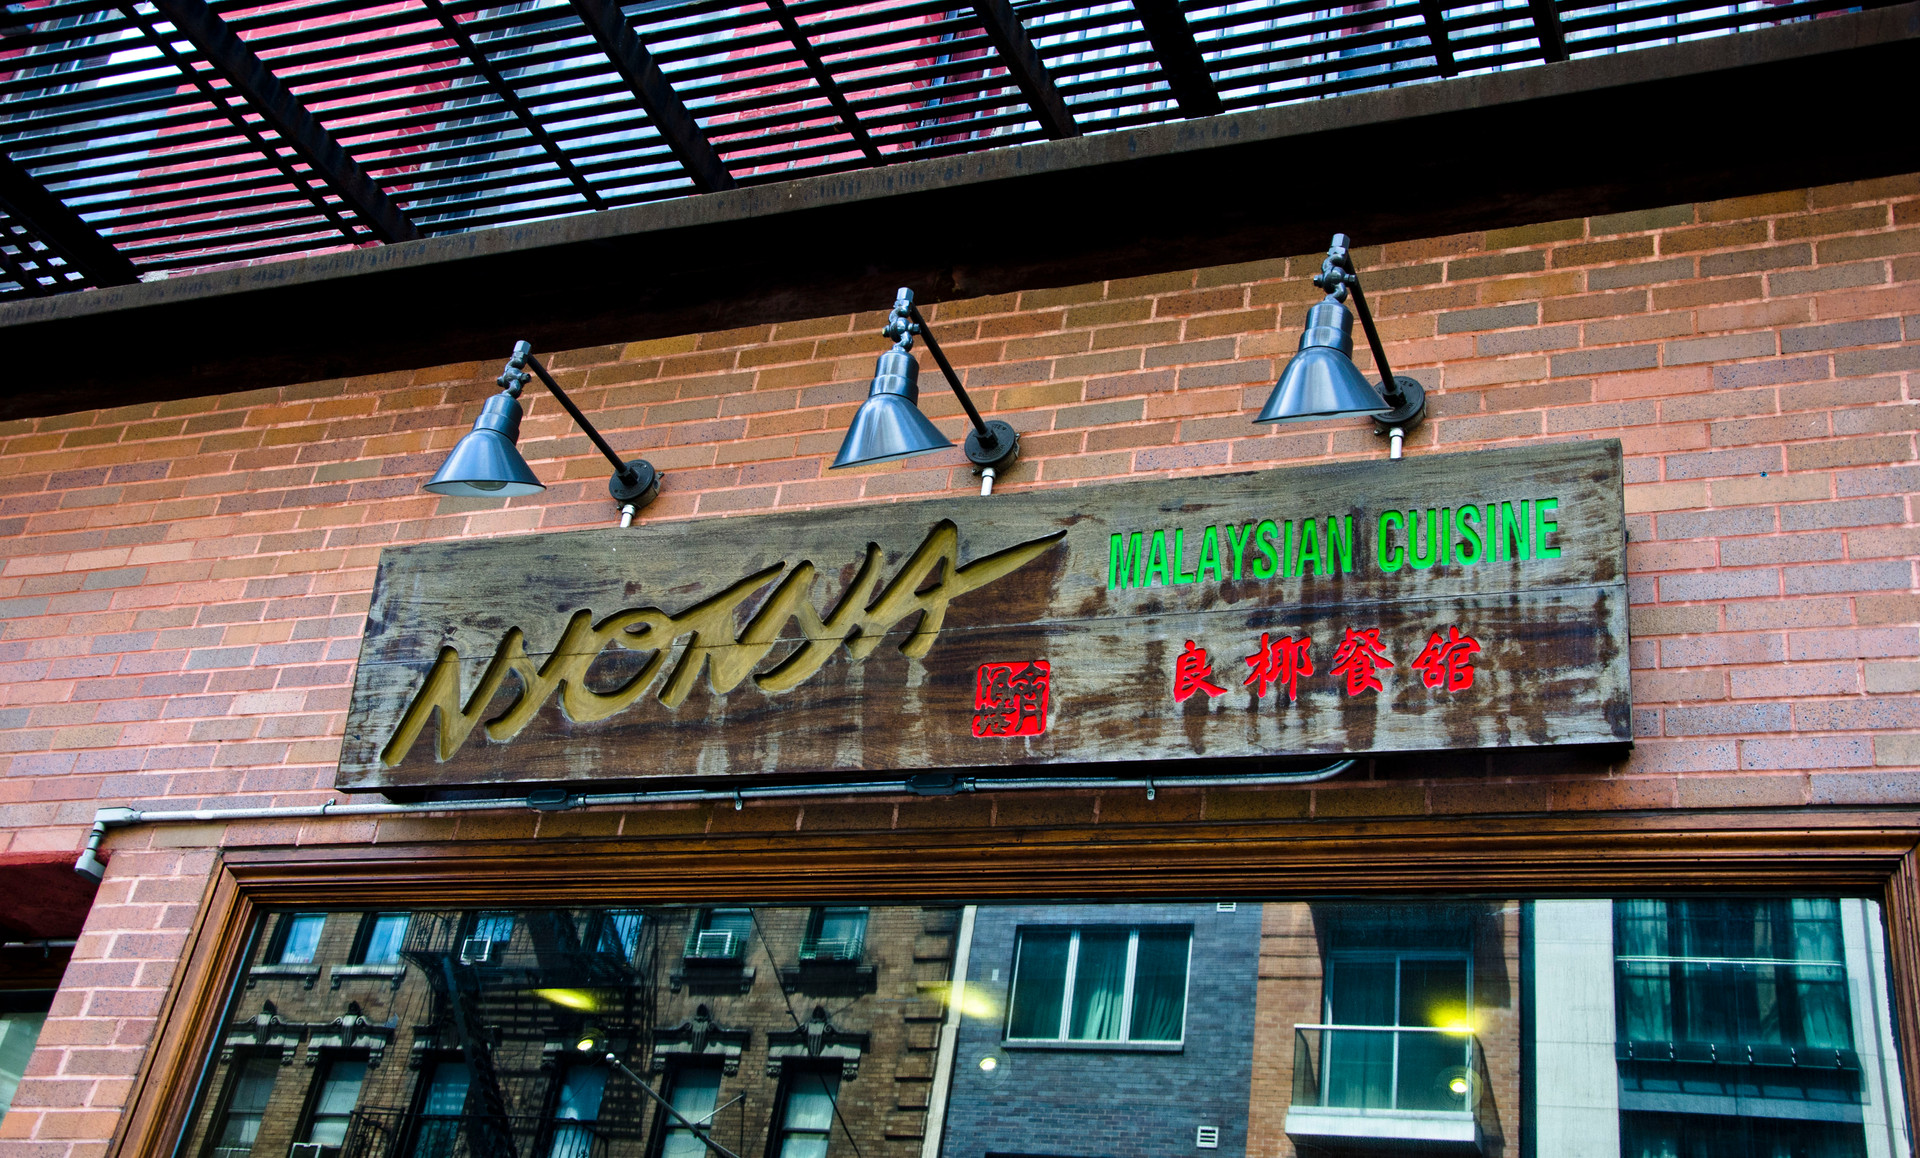 Best Malaysian restaurant in town